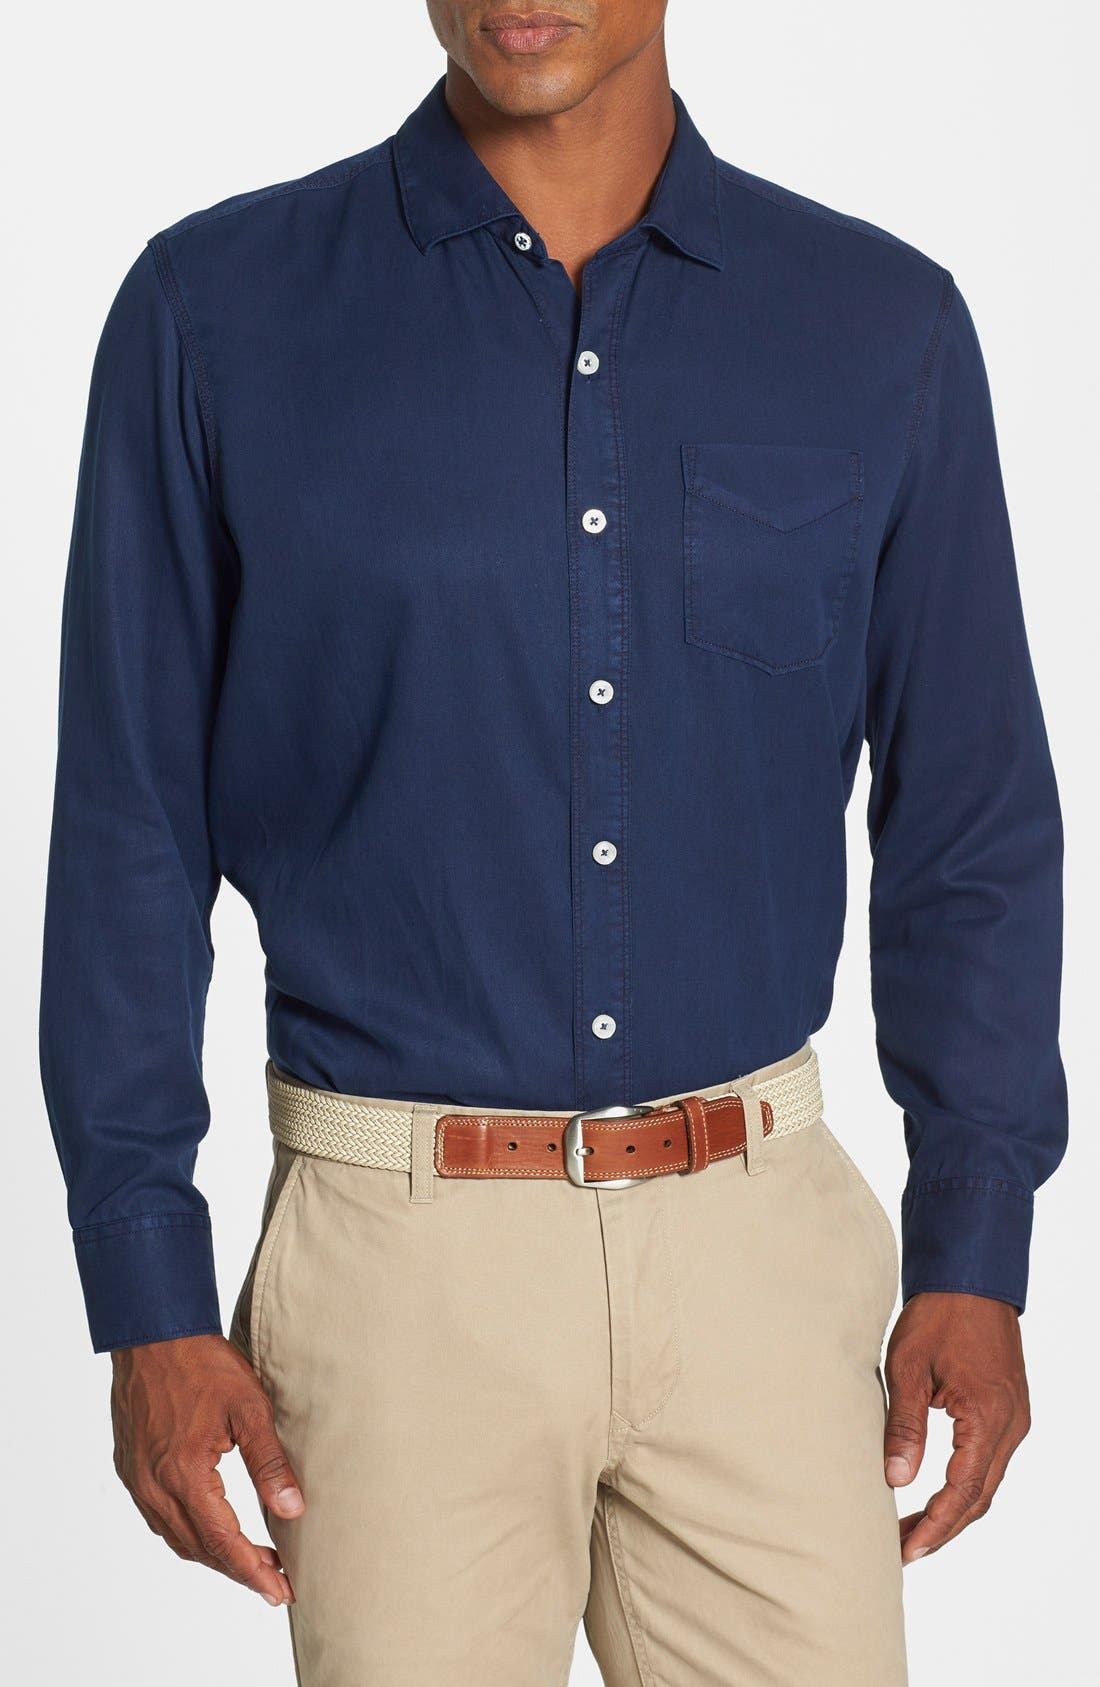 Alternate Image 1 Selected - Tommy Bahama Denim 'Still Twillin' Island Modern Fit Sport Shirt